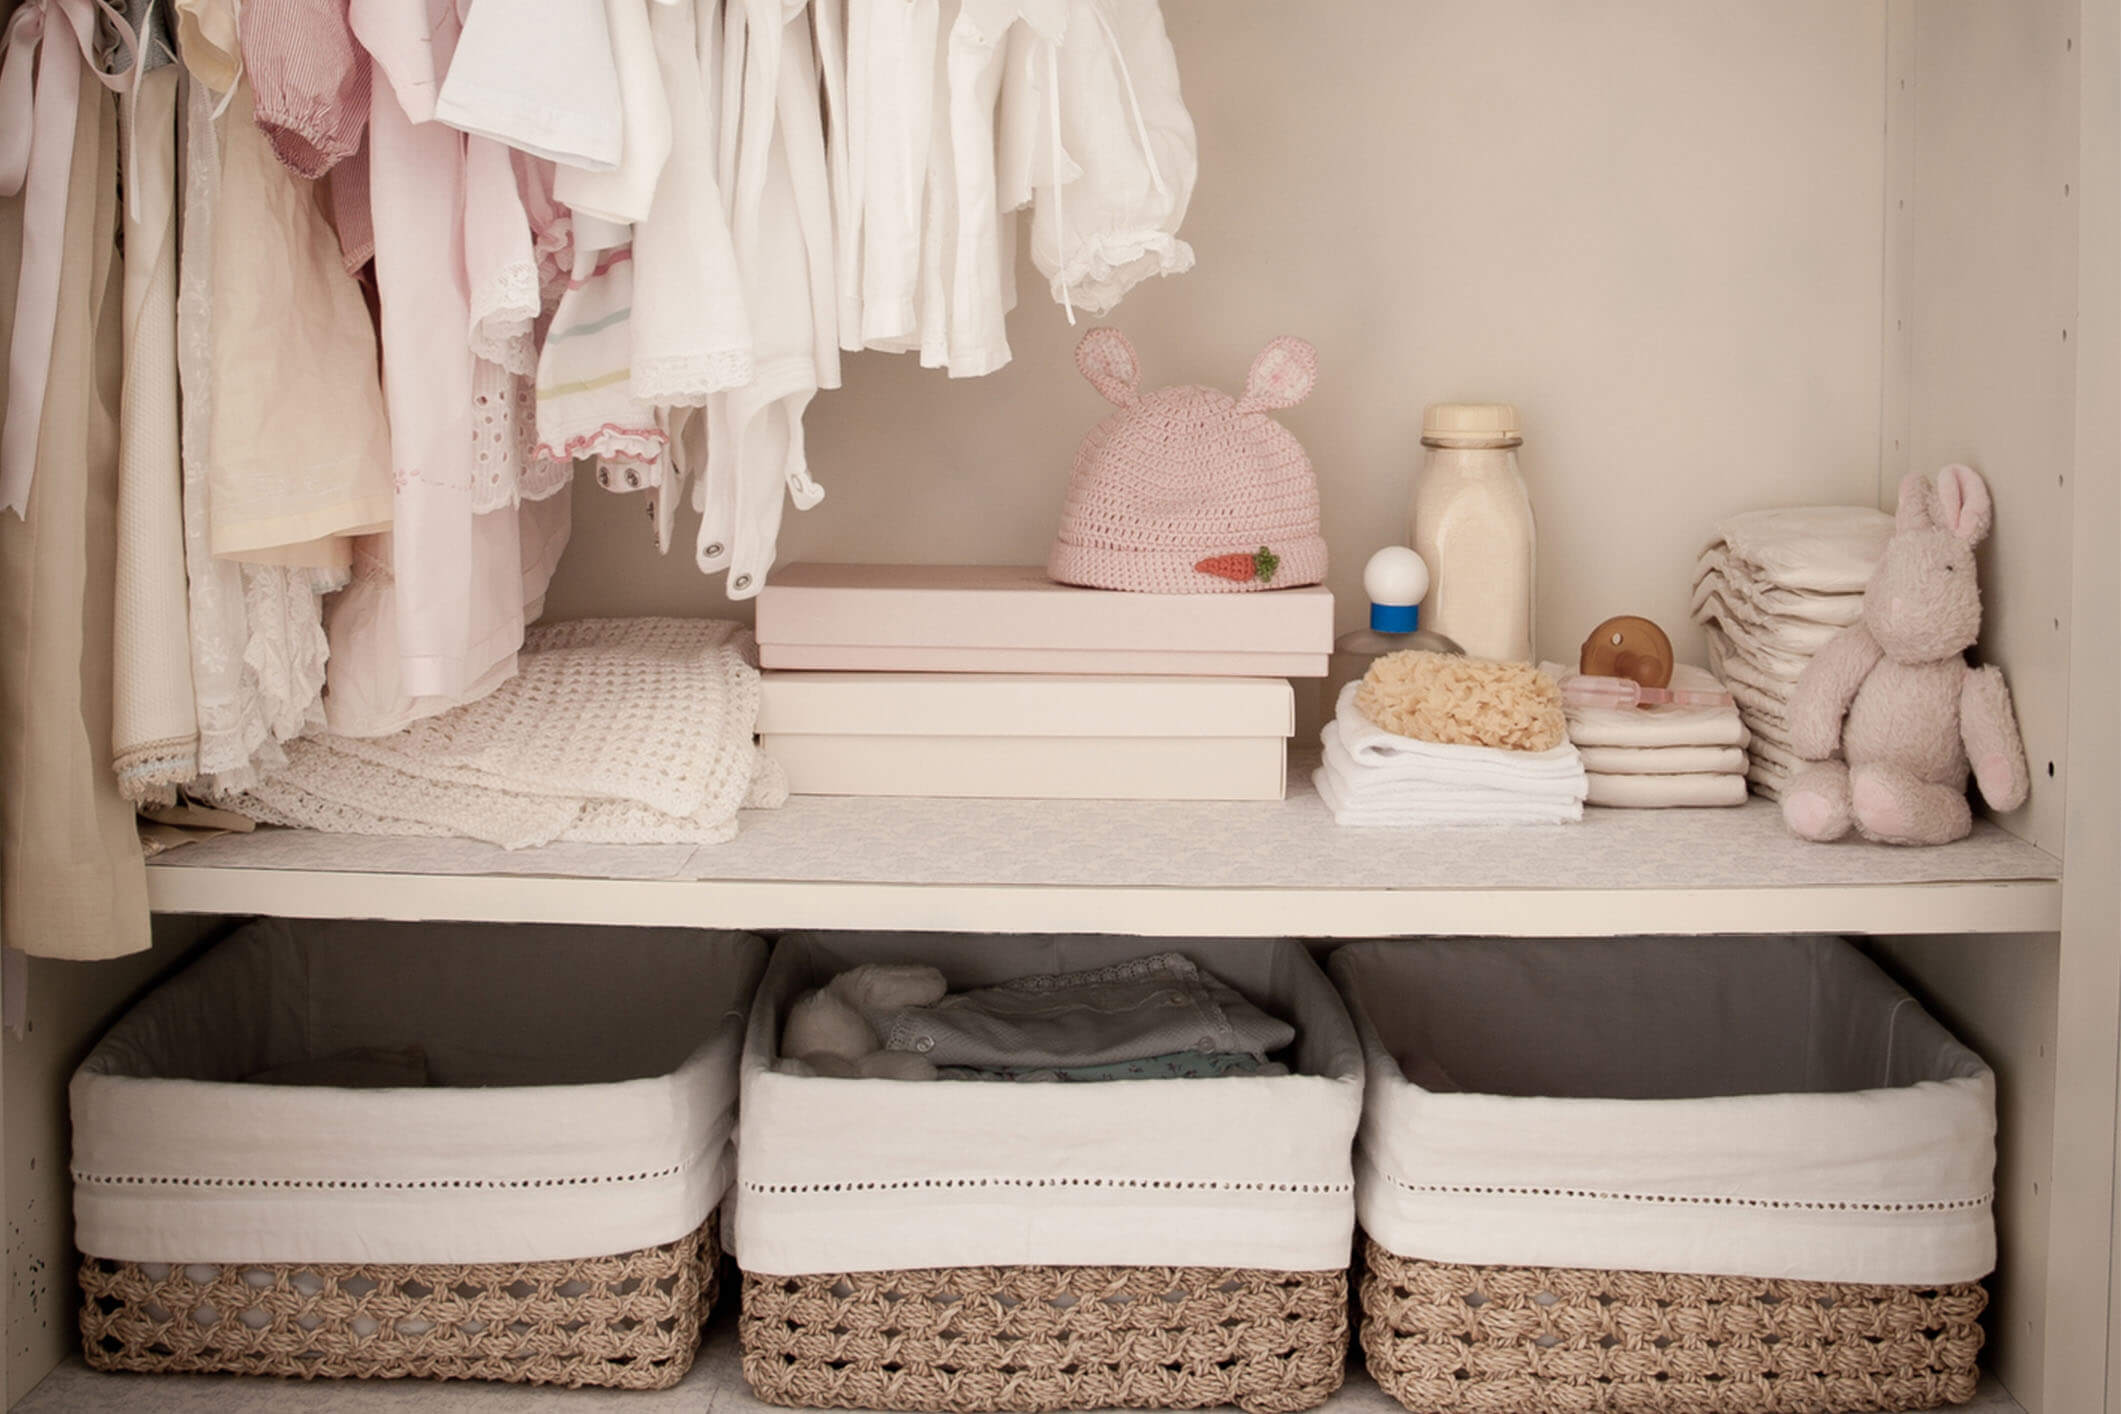 Home Organizer for Closets